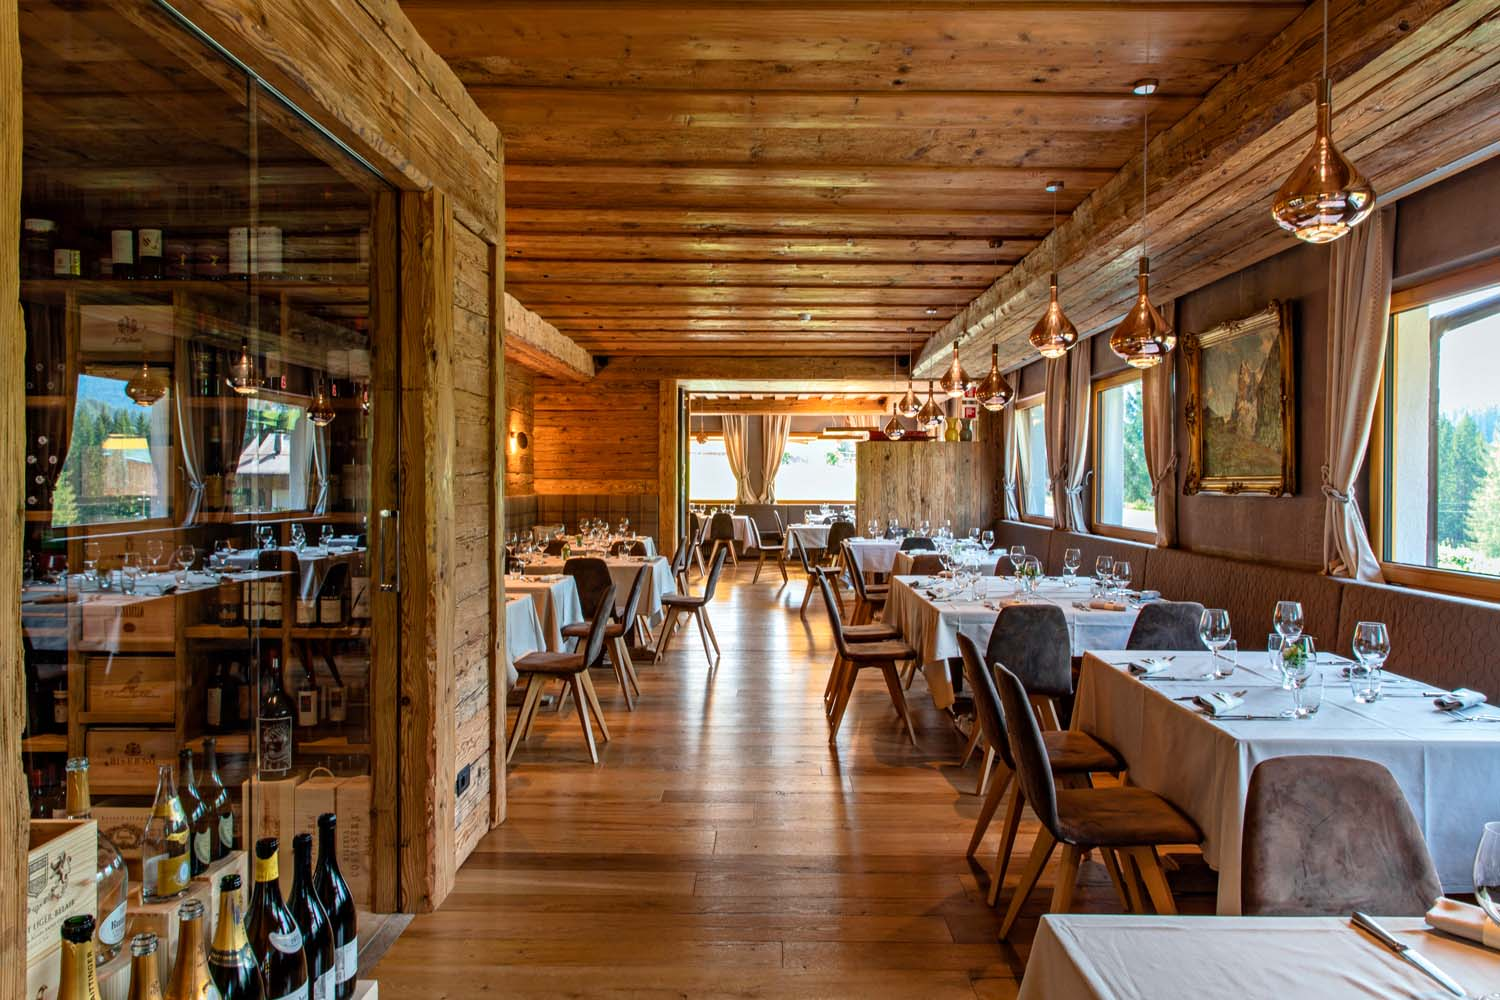 Dolomiti Lodge